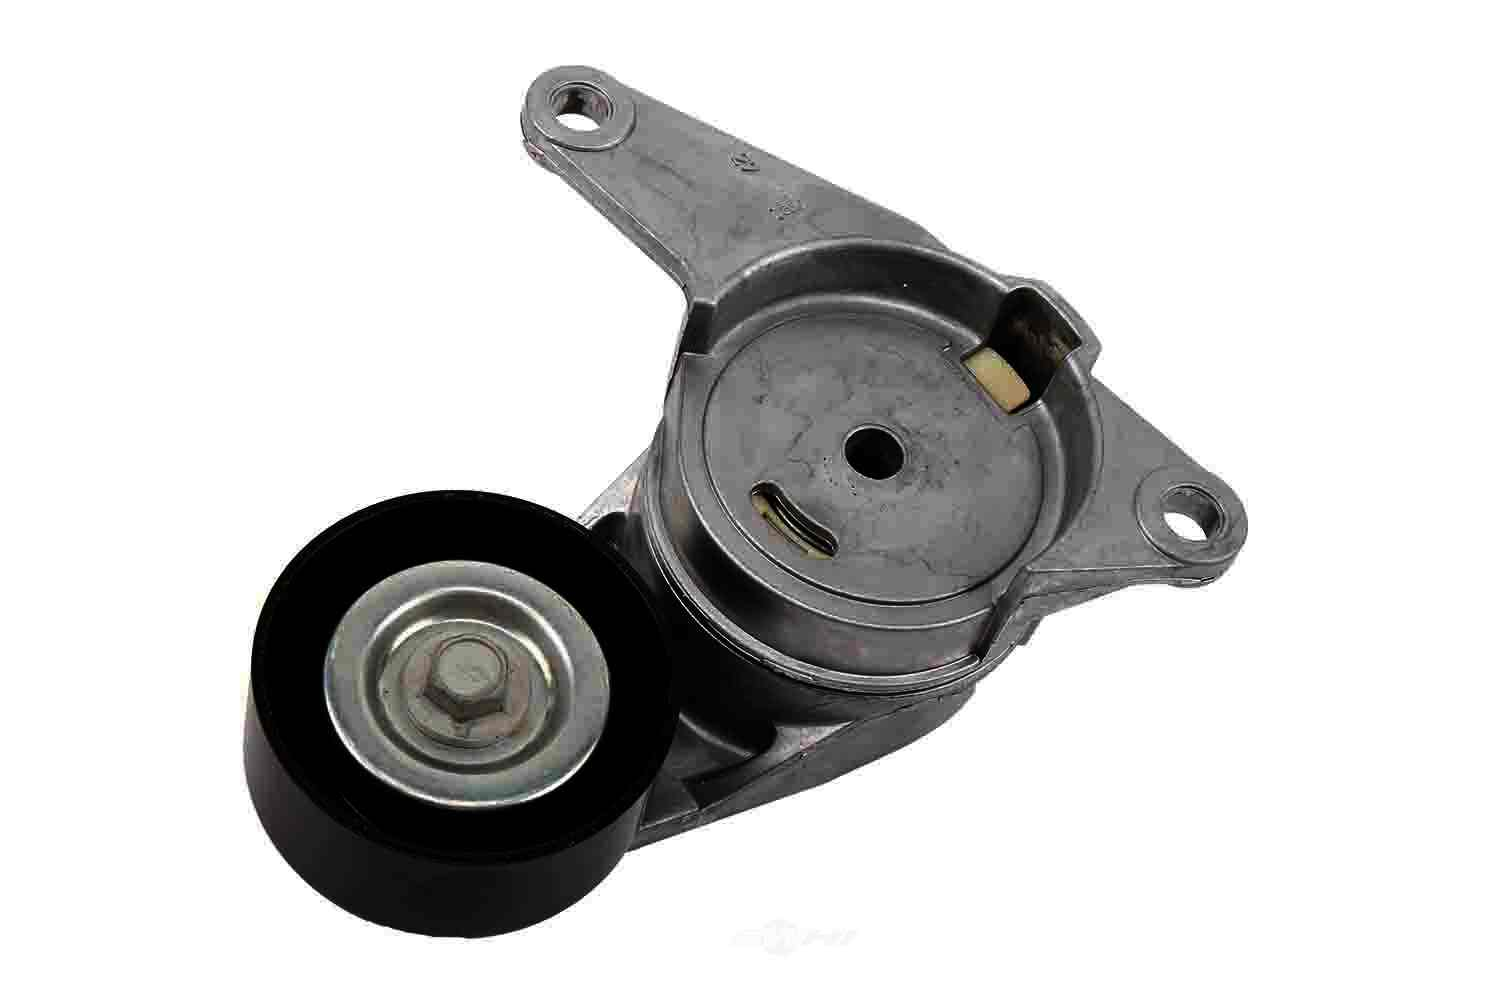 ACDELCO GM ORIGINAL EQUIPMENT - Accessory Drive Belt Tensioner Assembly (Accessory Drive) - DCB 12626644